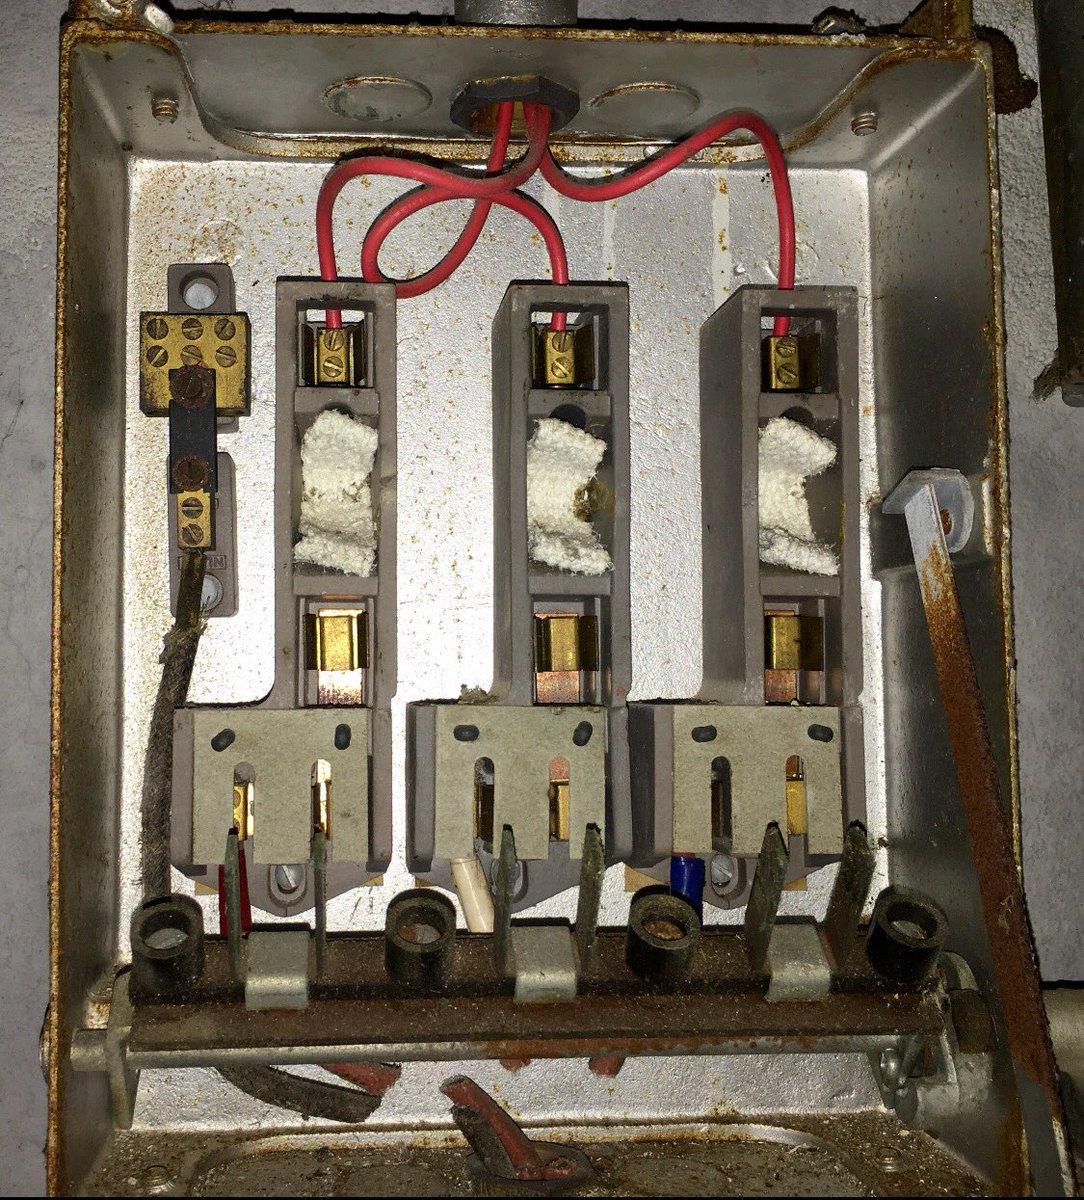 This Is Asbestos On Twitter Pure Chrysotile White Flash Older Fuse Boxes Pads Guards Are Commonly Found In Fuses Or Adjacent Disposed